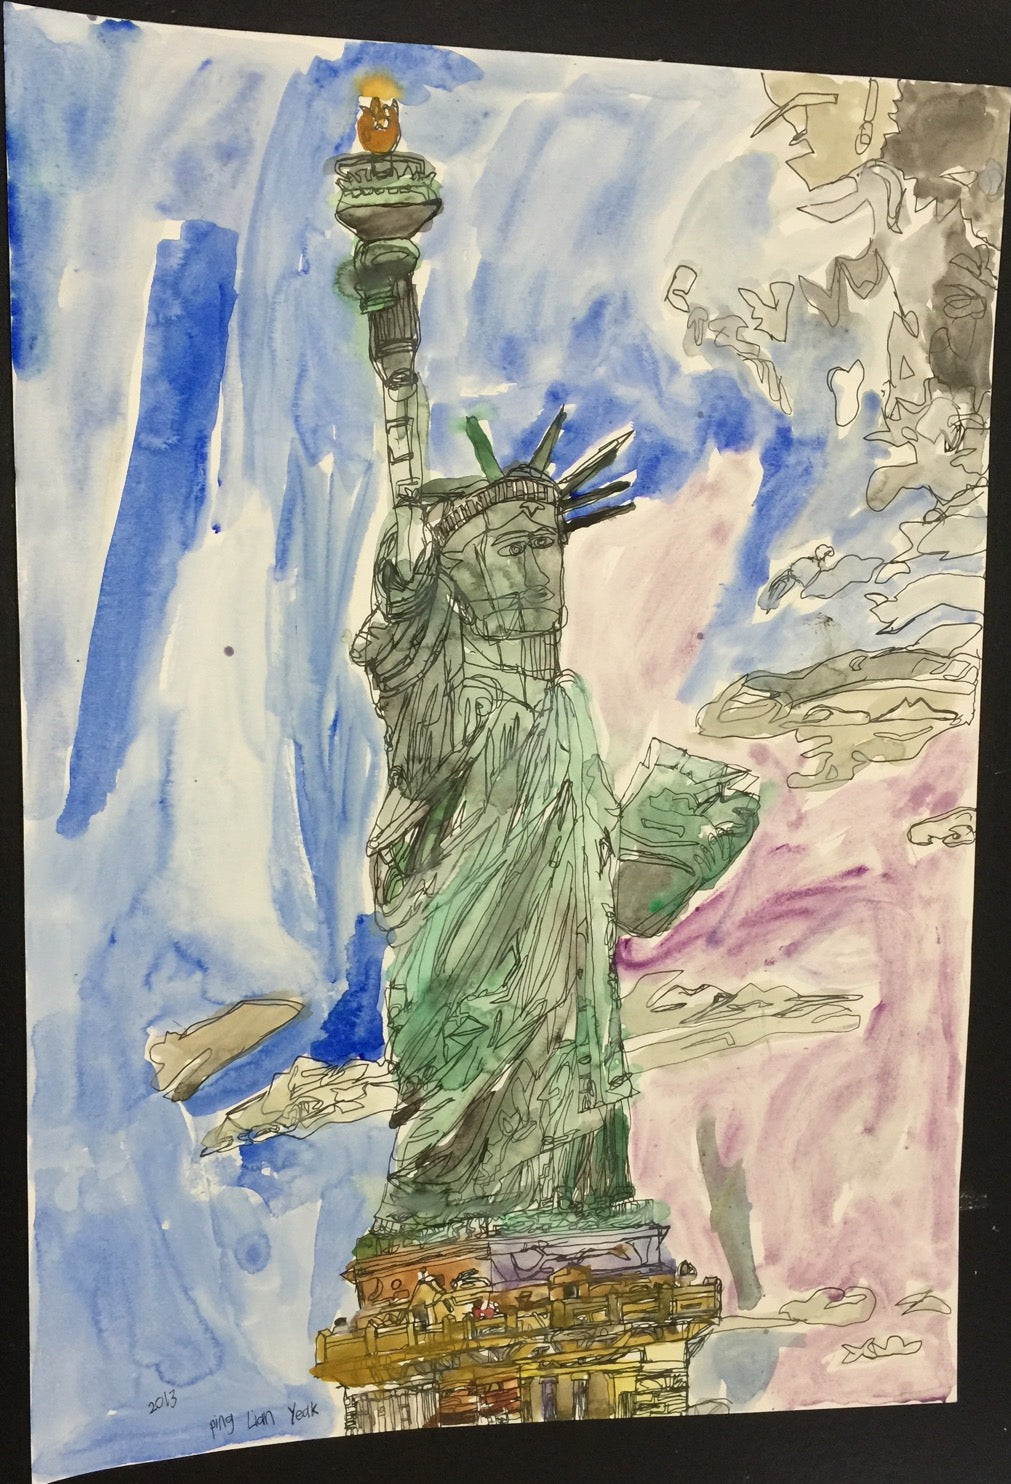 Original 15010 Statute Of Liberty - Painted in 2015 - 16.5x23.3 inches